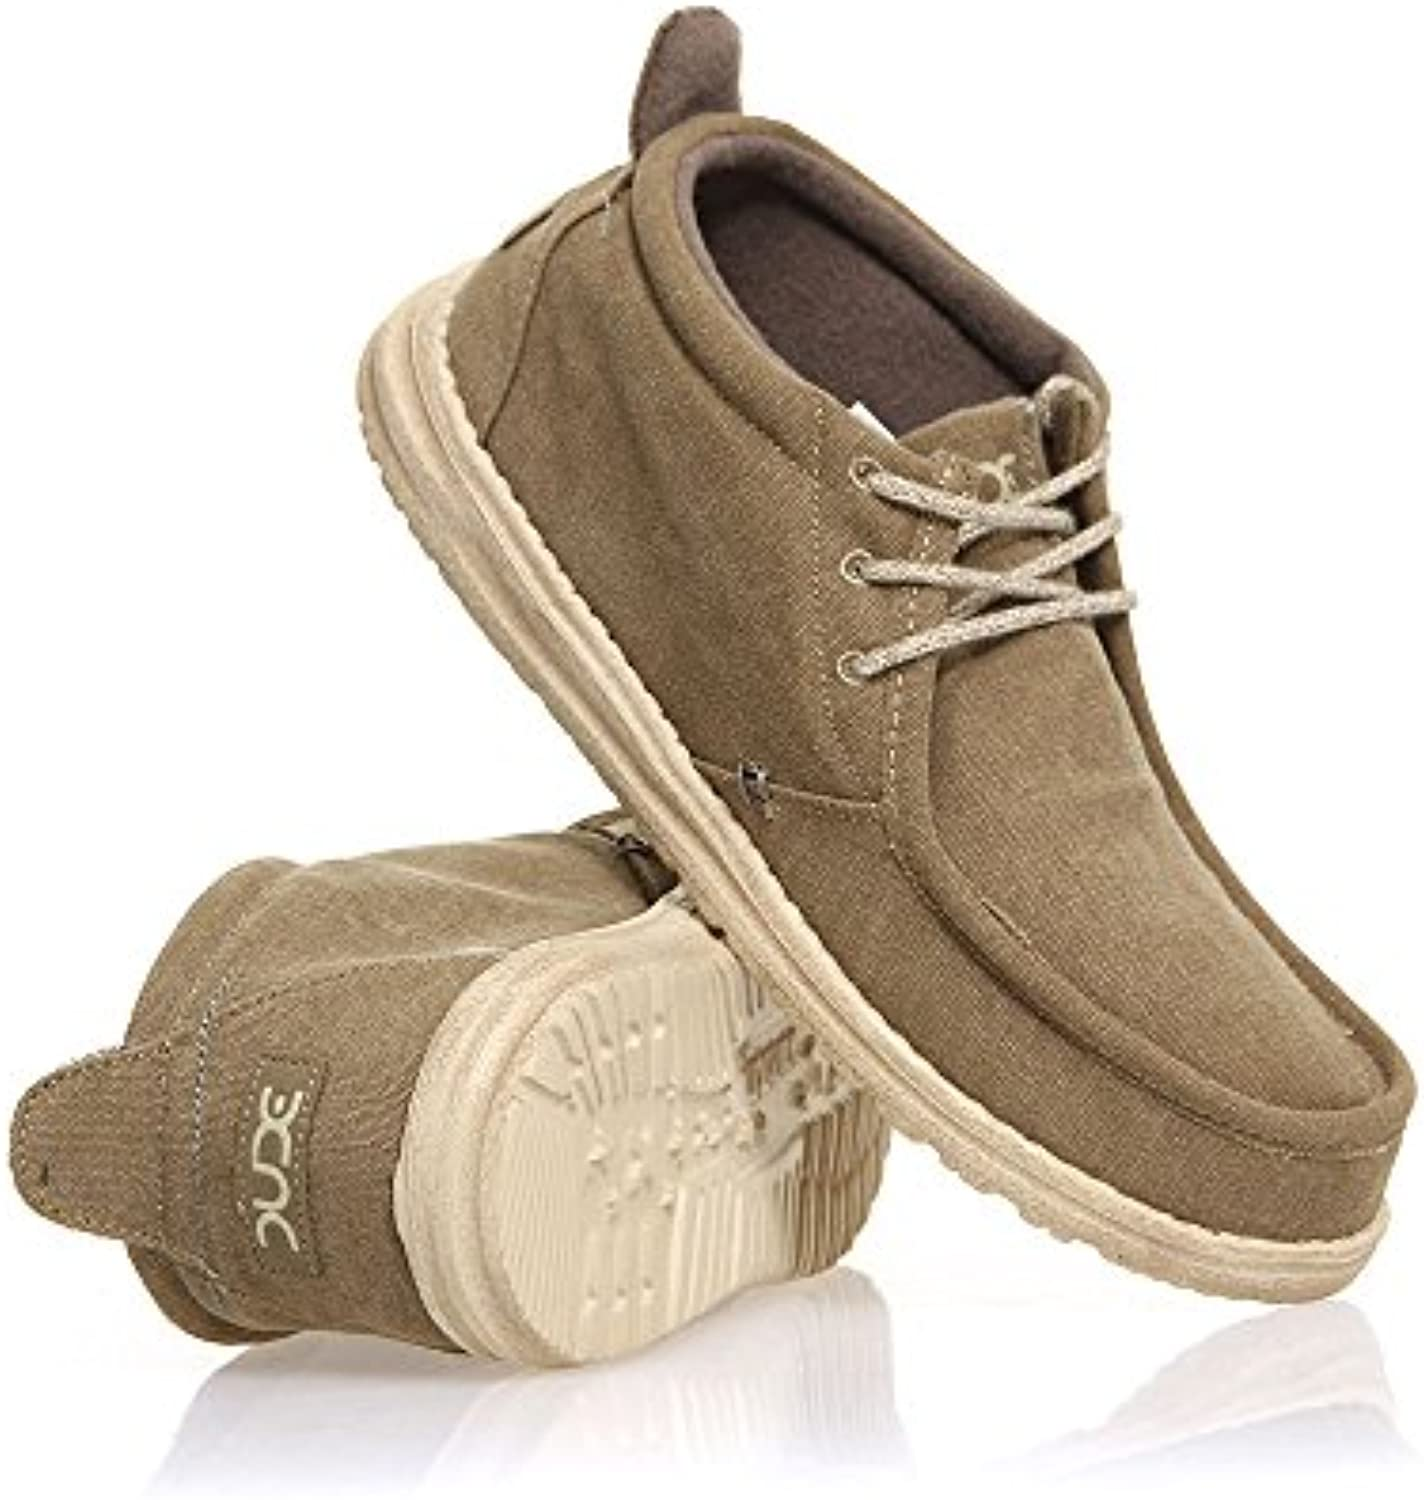 Hola Oliva De Conrad Dude Shoes Hombres Lona Arranque UK9 / EU43